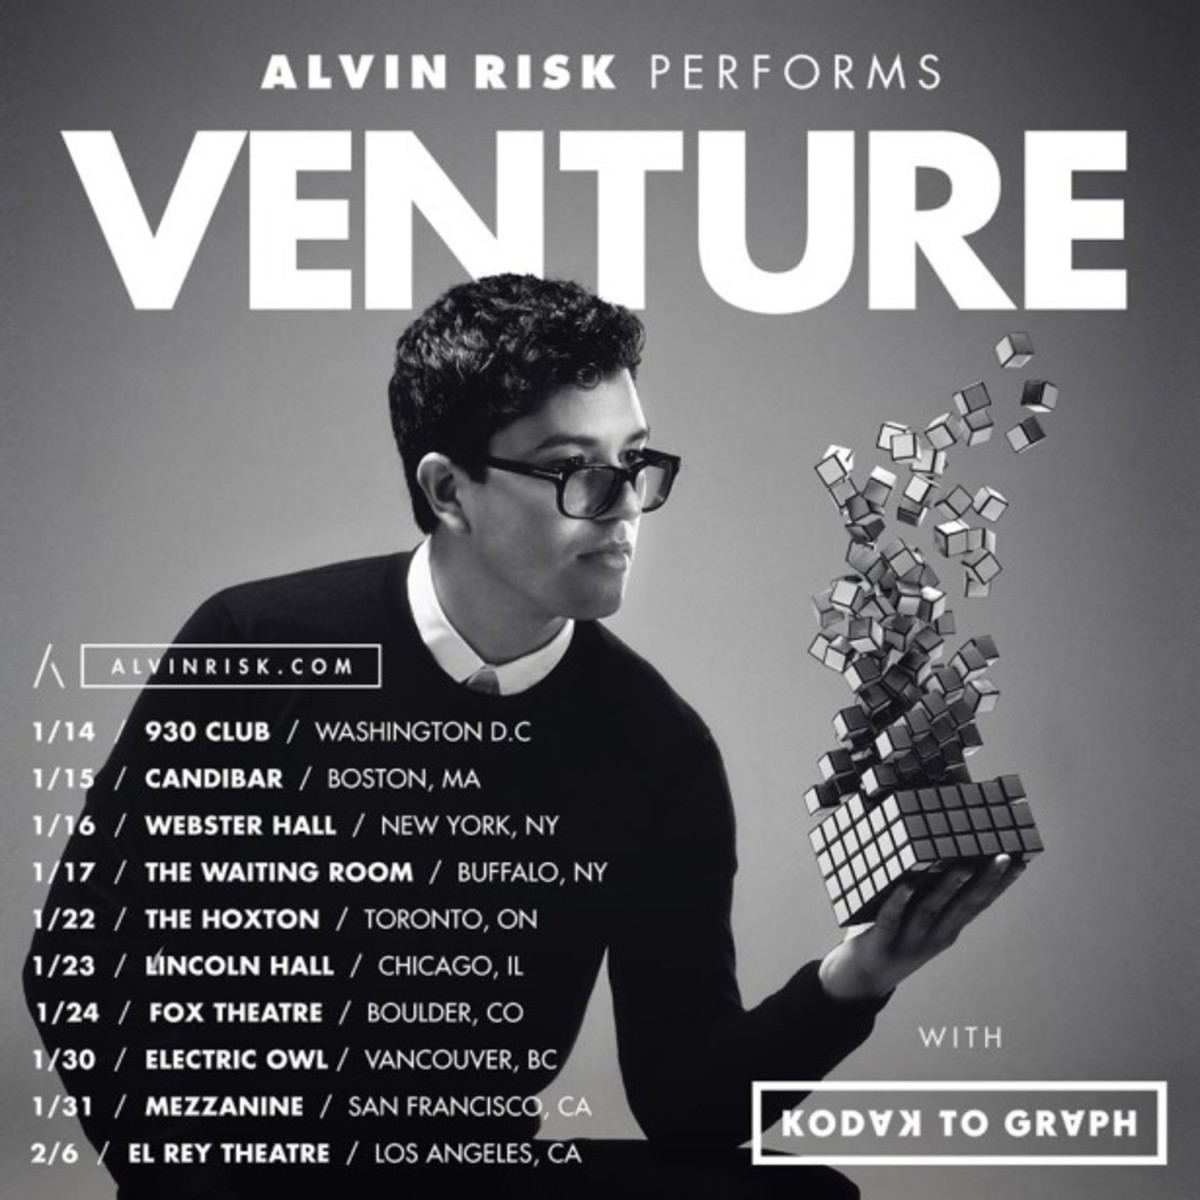 Alvin Risk Tour Dropping Immersive Video Experience